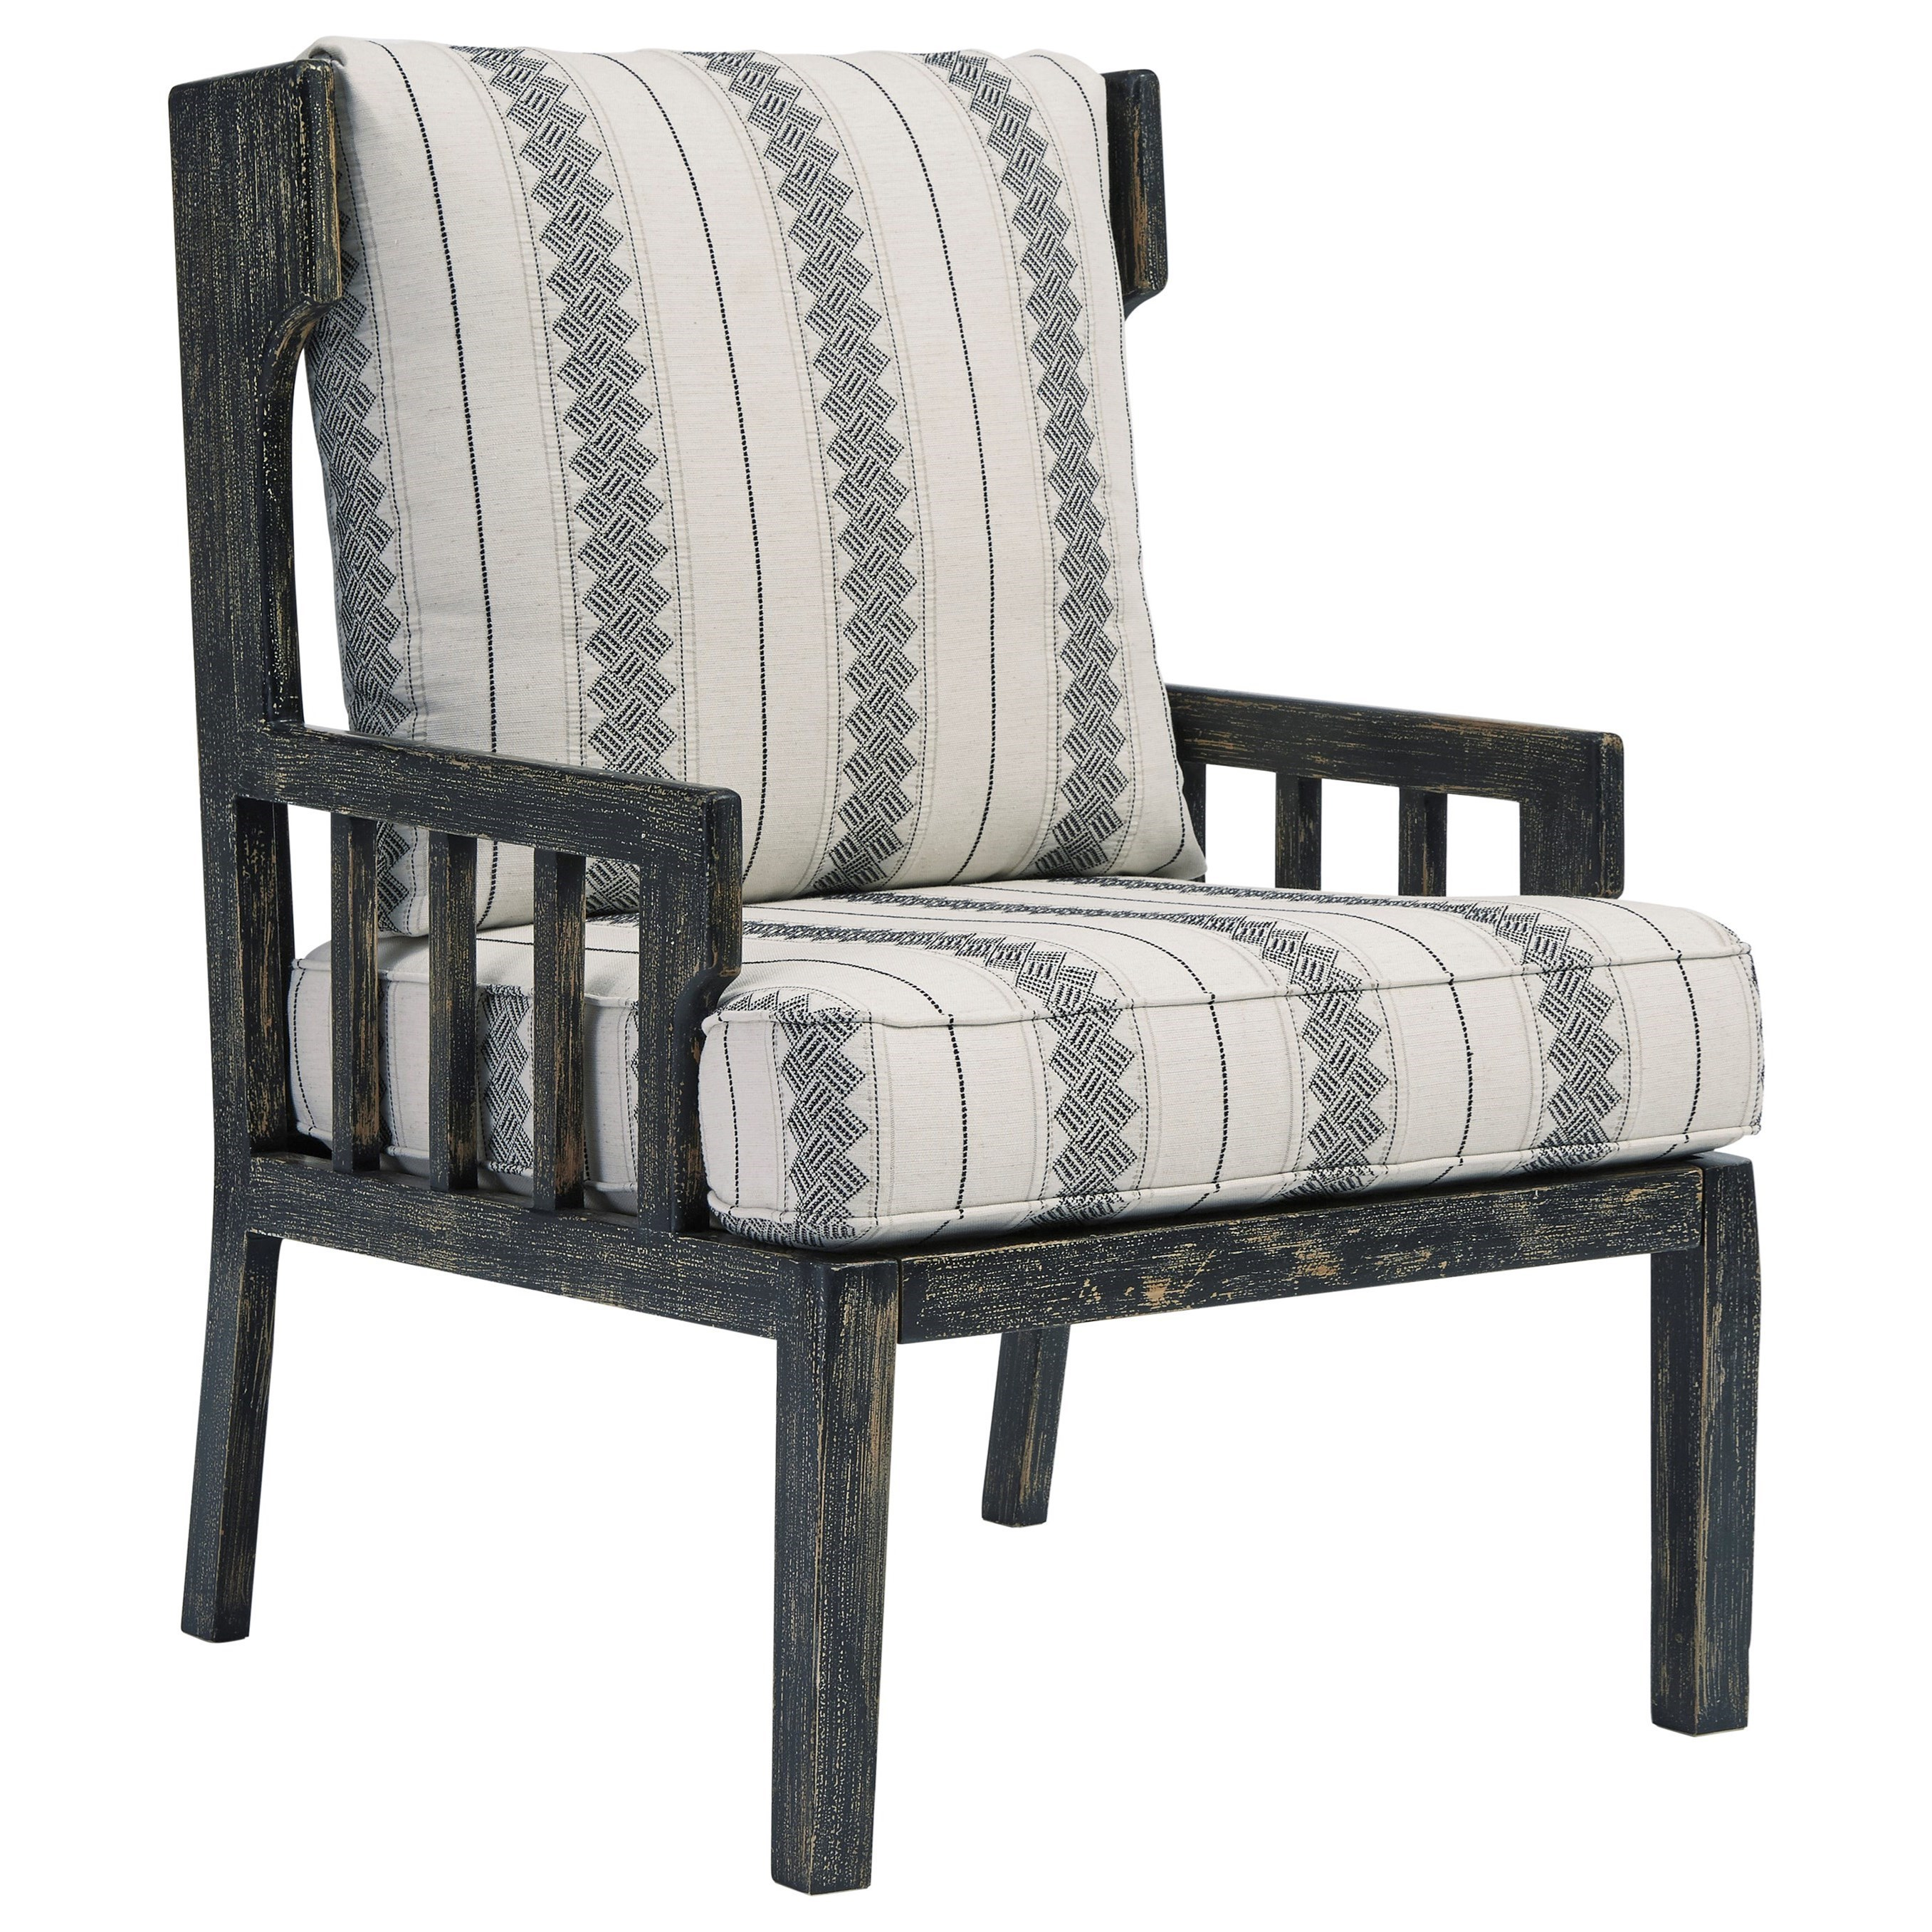 Distressed Black Wood Accent Chair with Wing Back and Loose Reversible Cushions